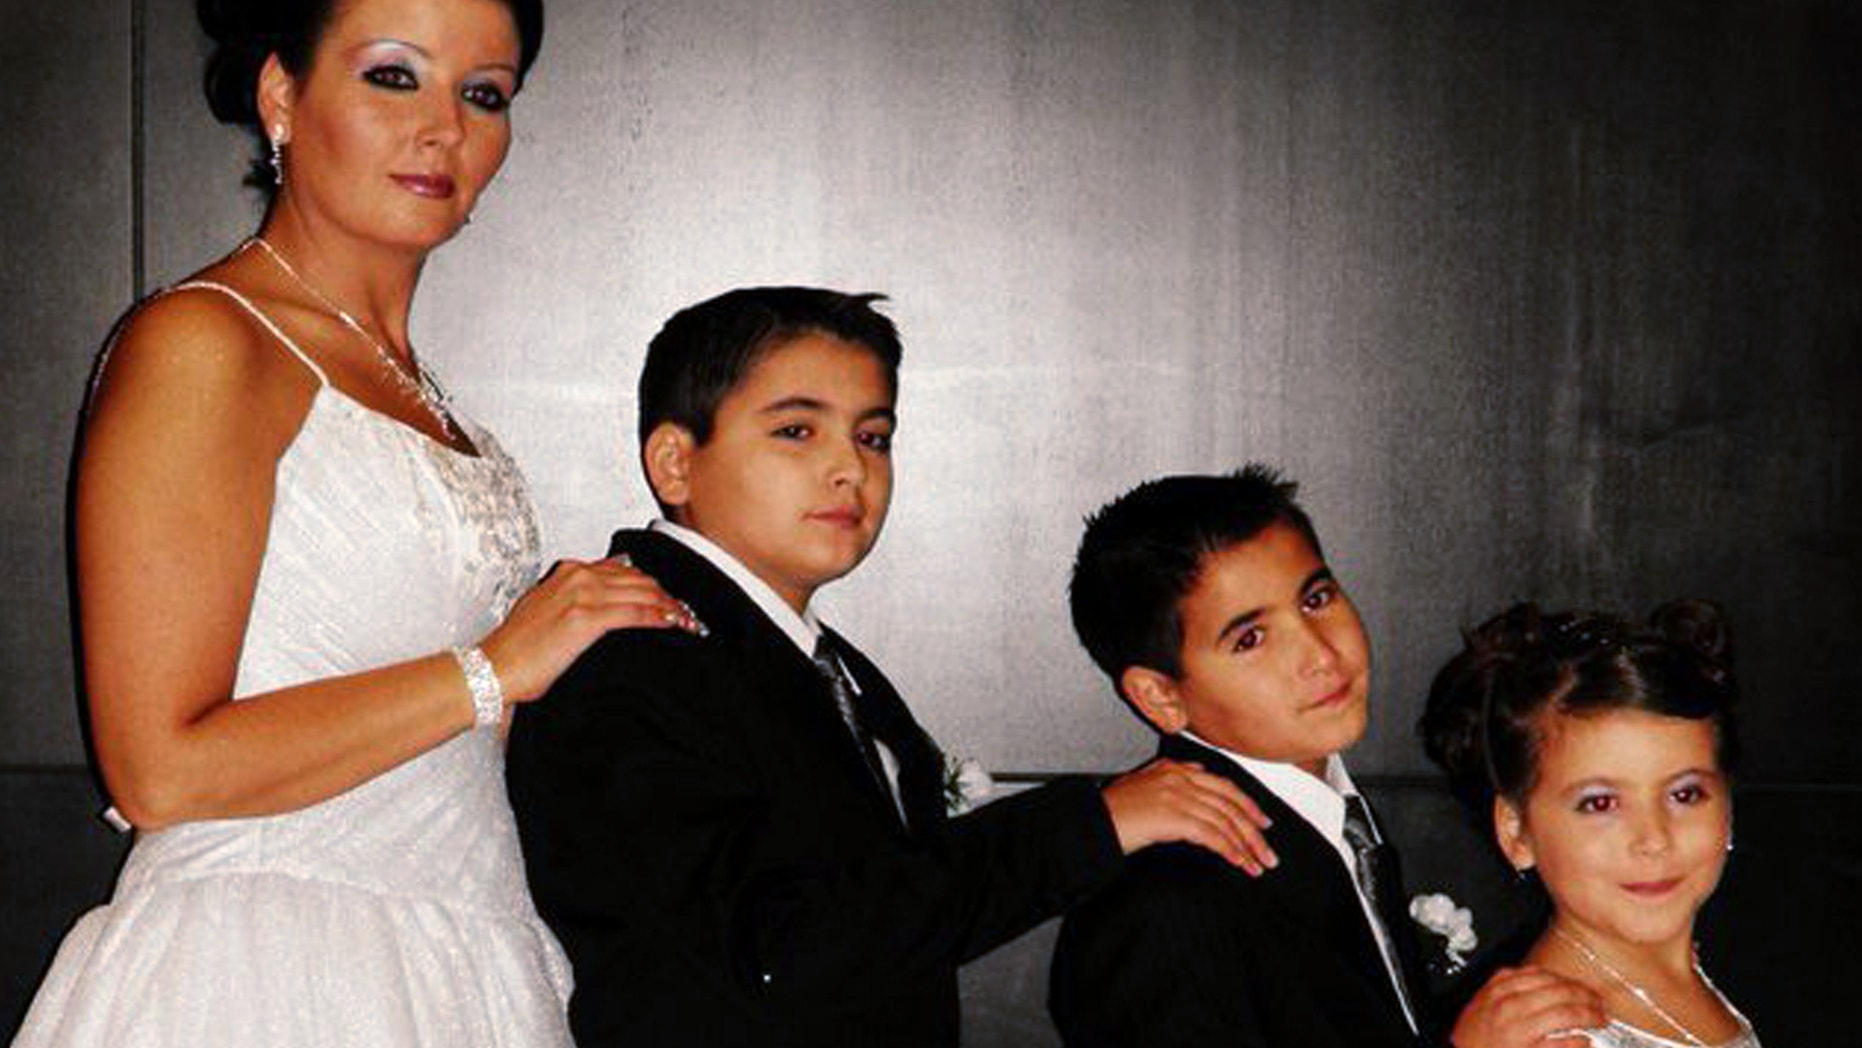 FILE: Bethany Gonzales poses with her three children, 13-year-old Jehed, 10-year-old, Edhem, and 9-year-old Jannah